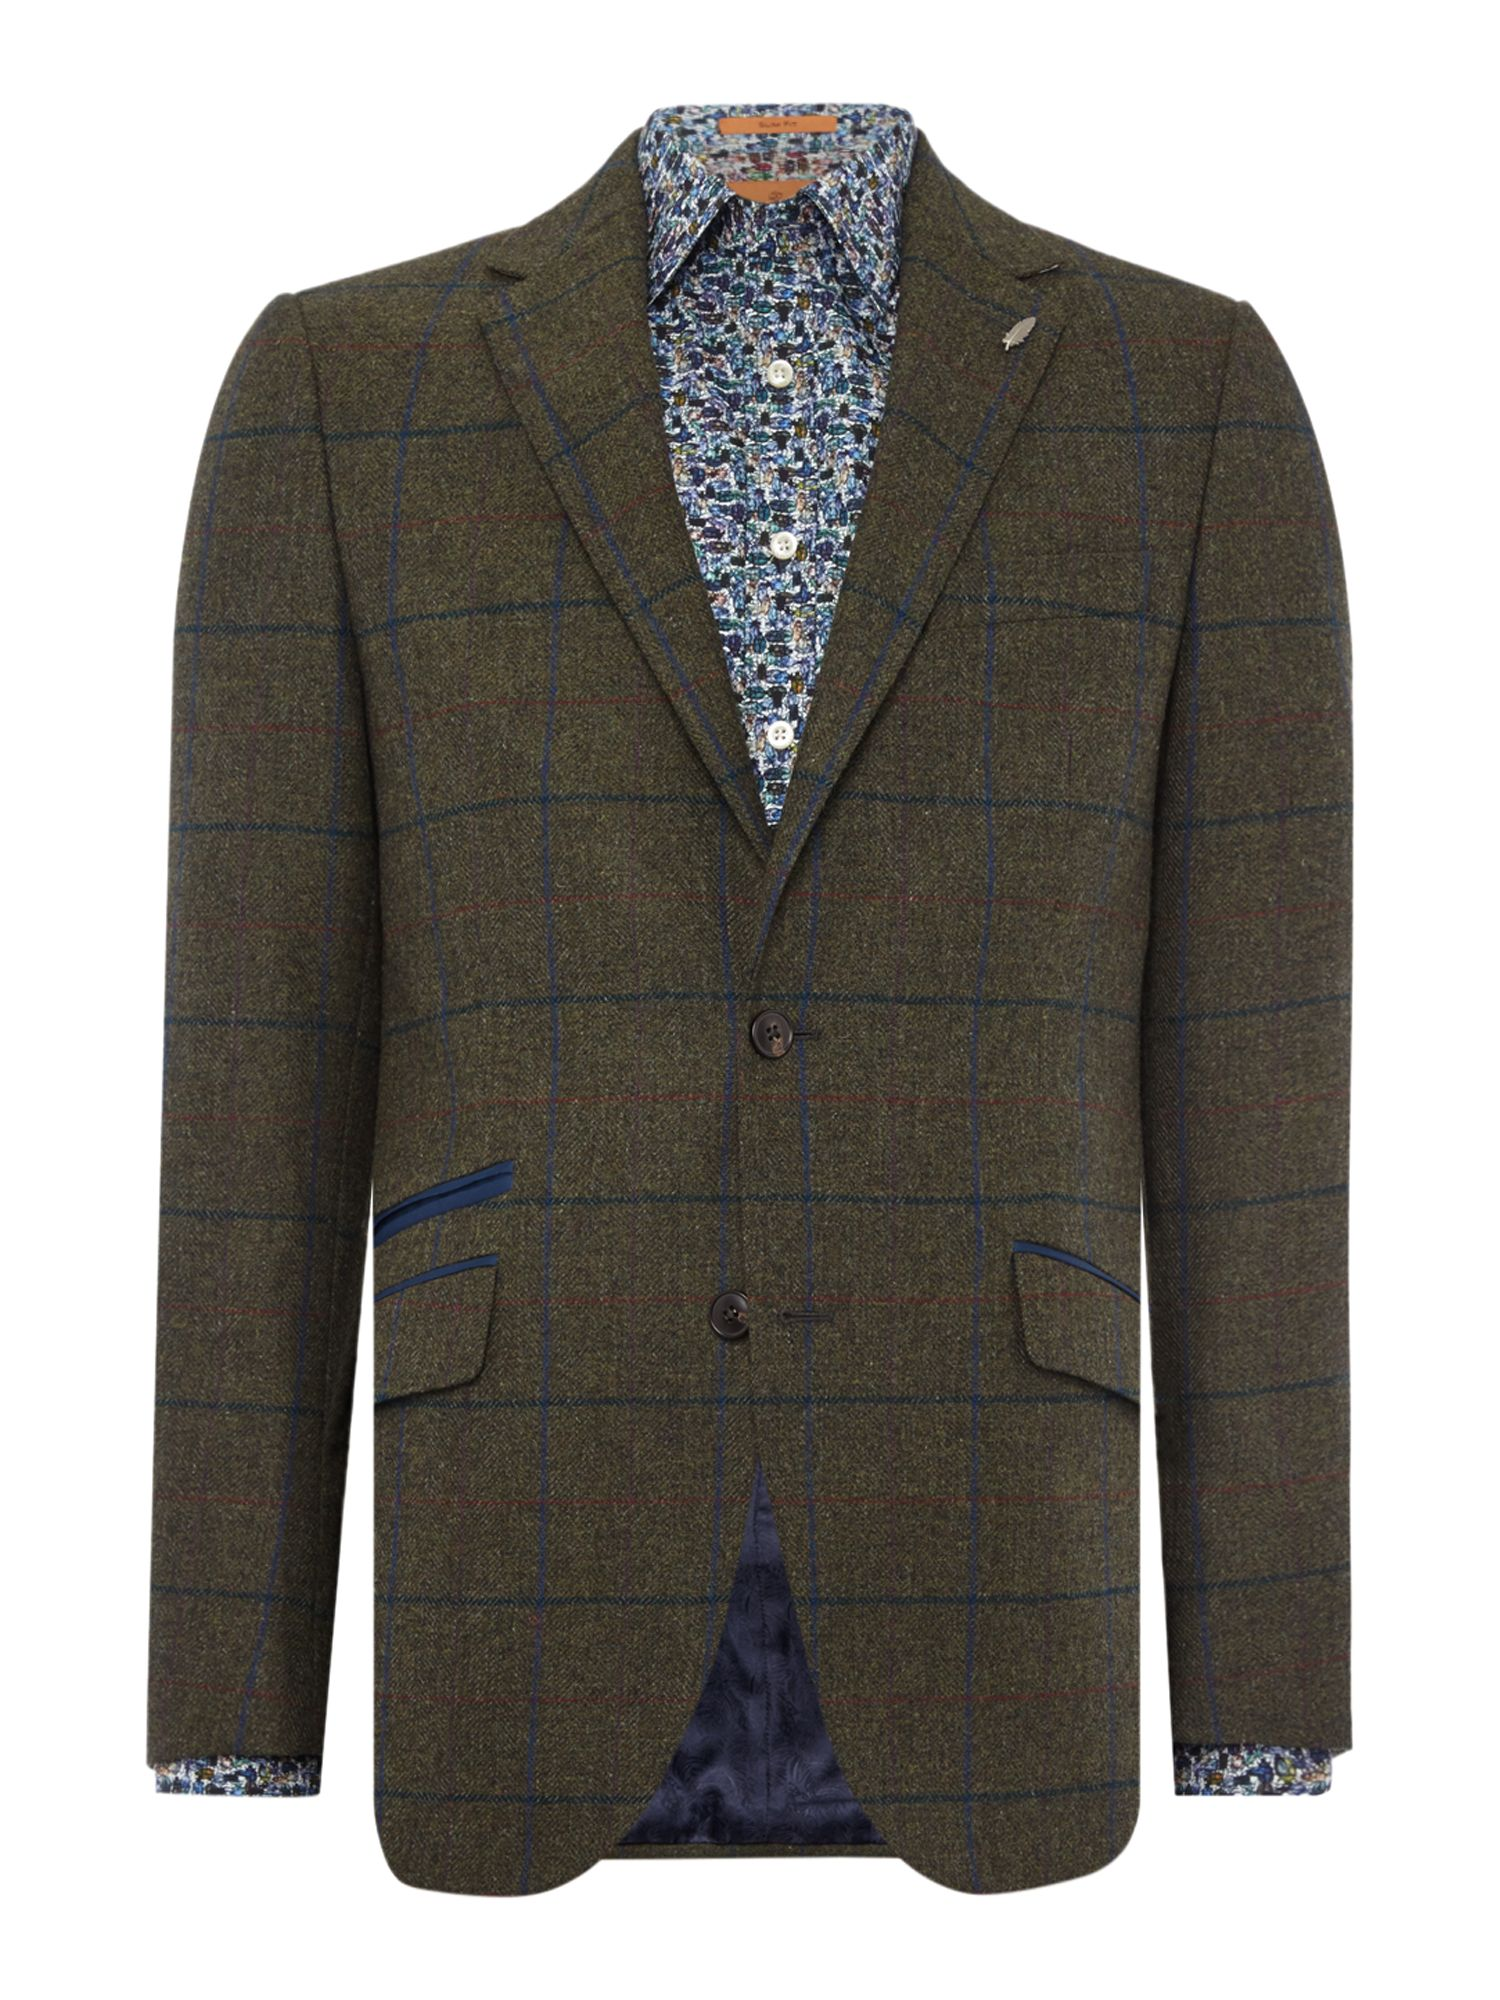 DHgate helps you get high quality discount mens tweed jacket at bulk prices. dvlnpxiuf.ga provides mens tweed jacket items from China top selected Men's Jackets, Men's Outerwear & Coats, Men's Clothing, Apparel suppliers at wholesale prices with worldwide delivery.